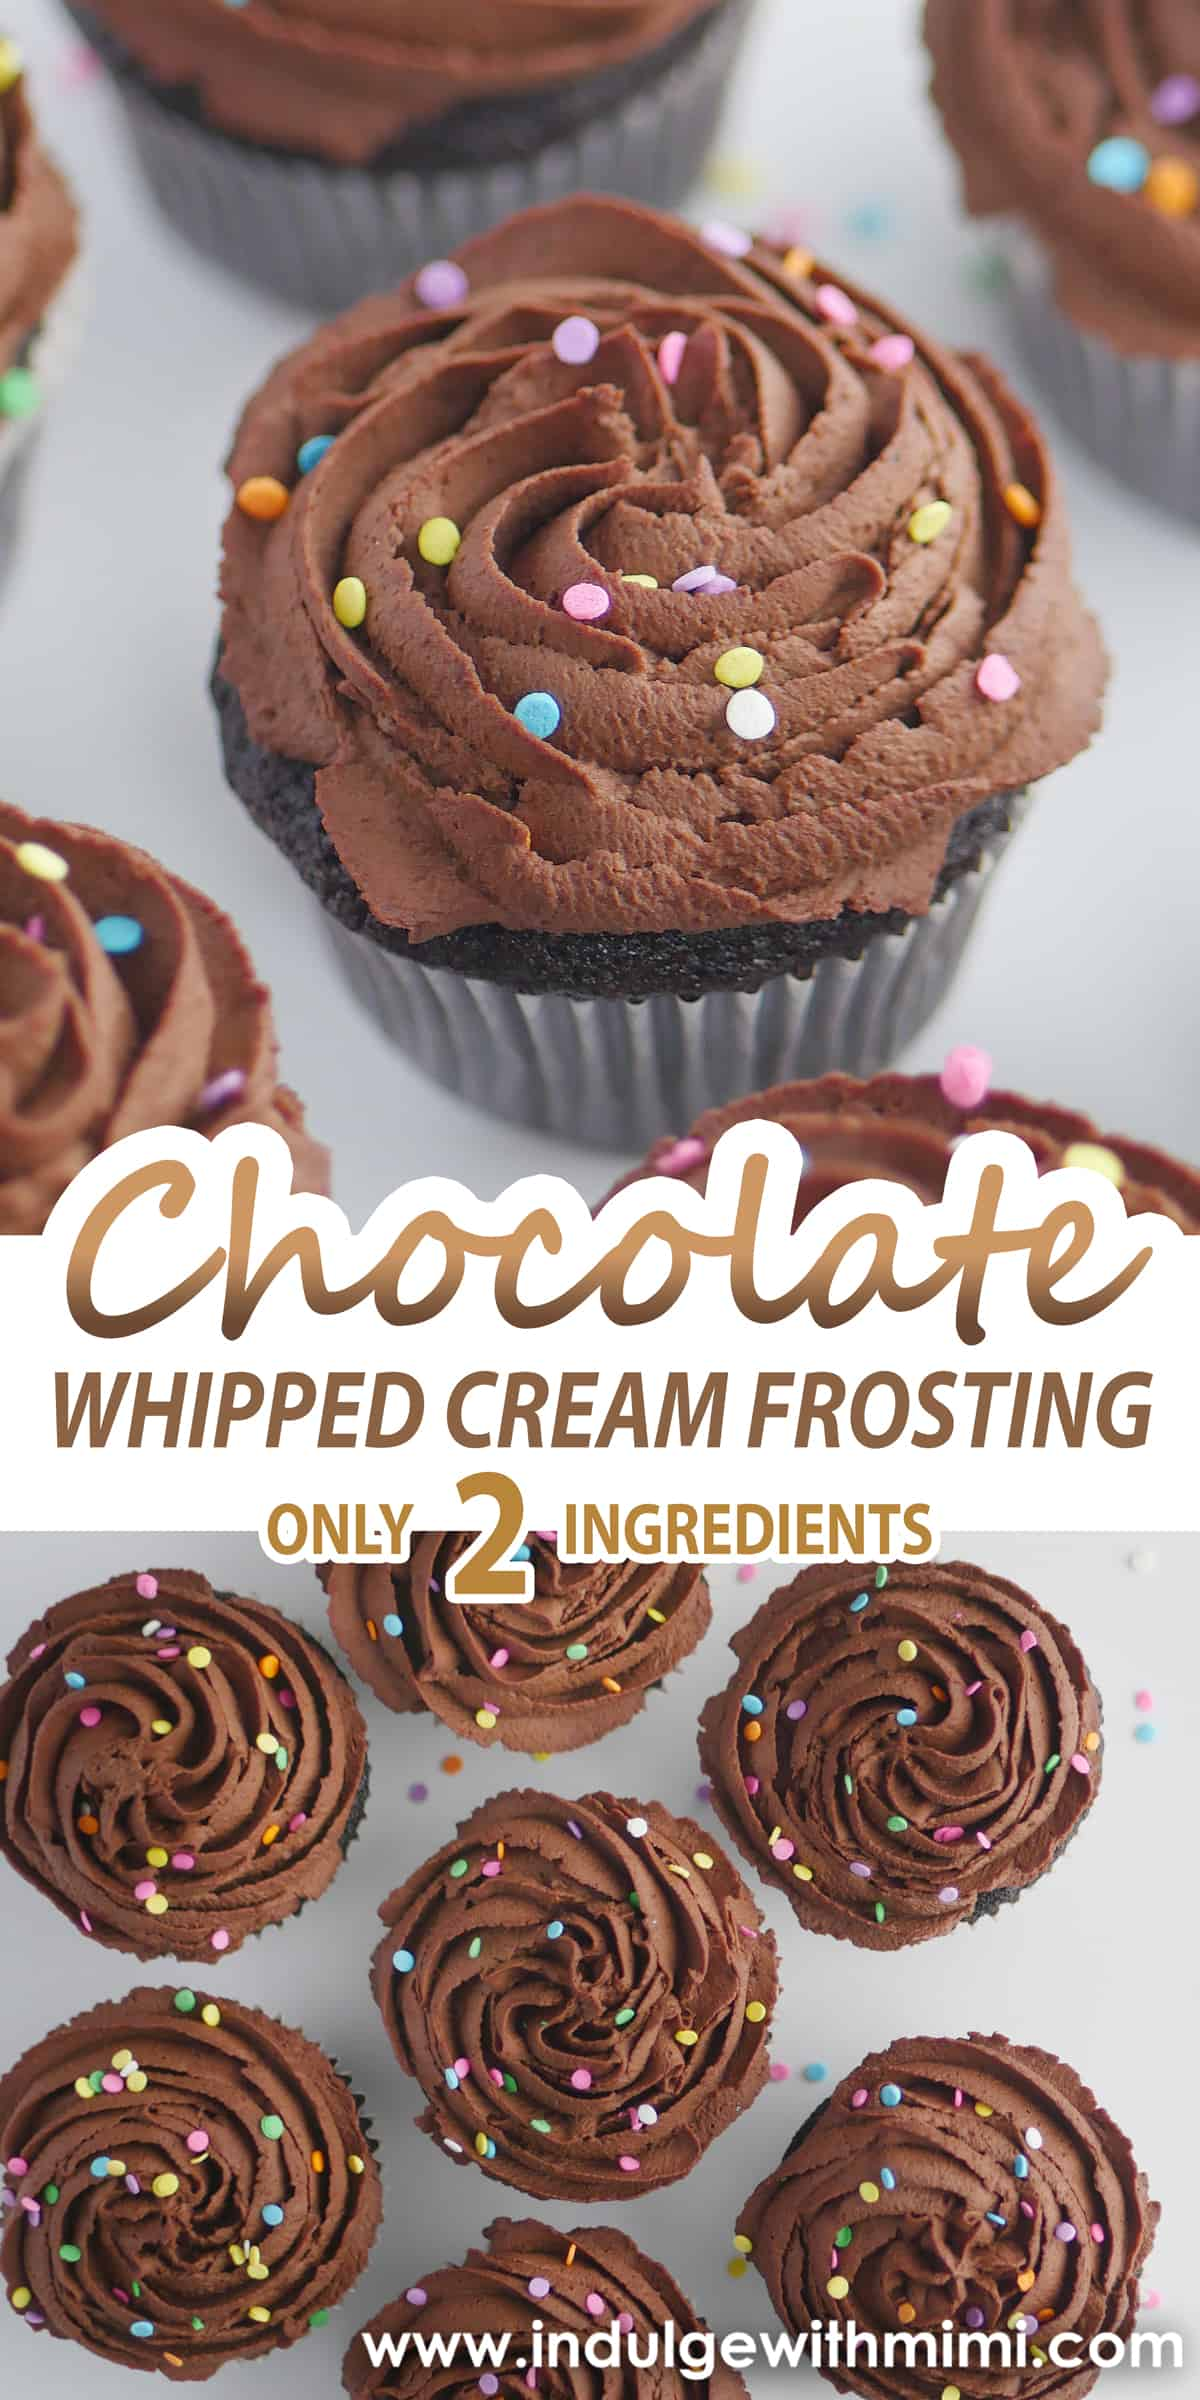 Chocolate whipped cream frosting two ingredient cupcake with rainbow sprinkles on top